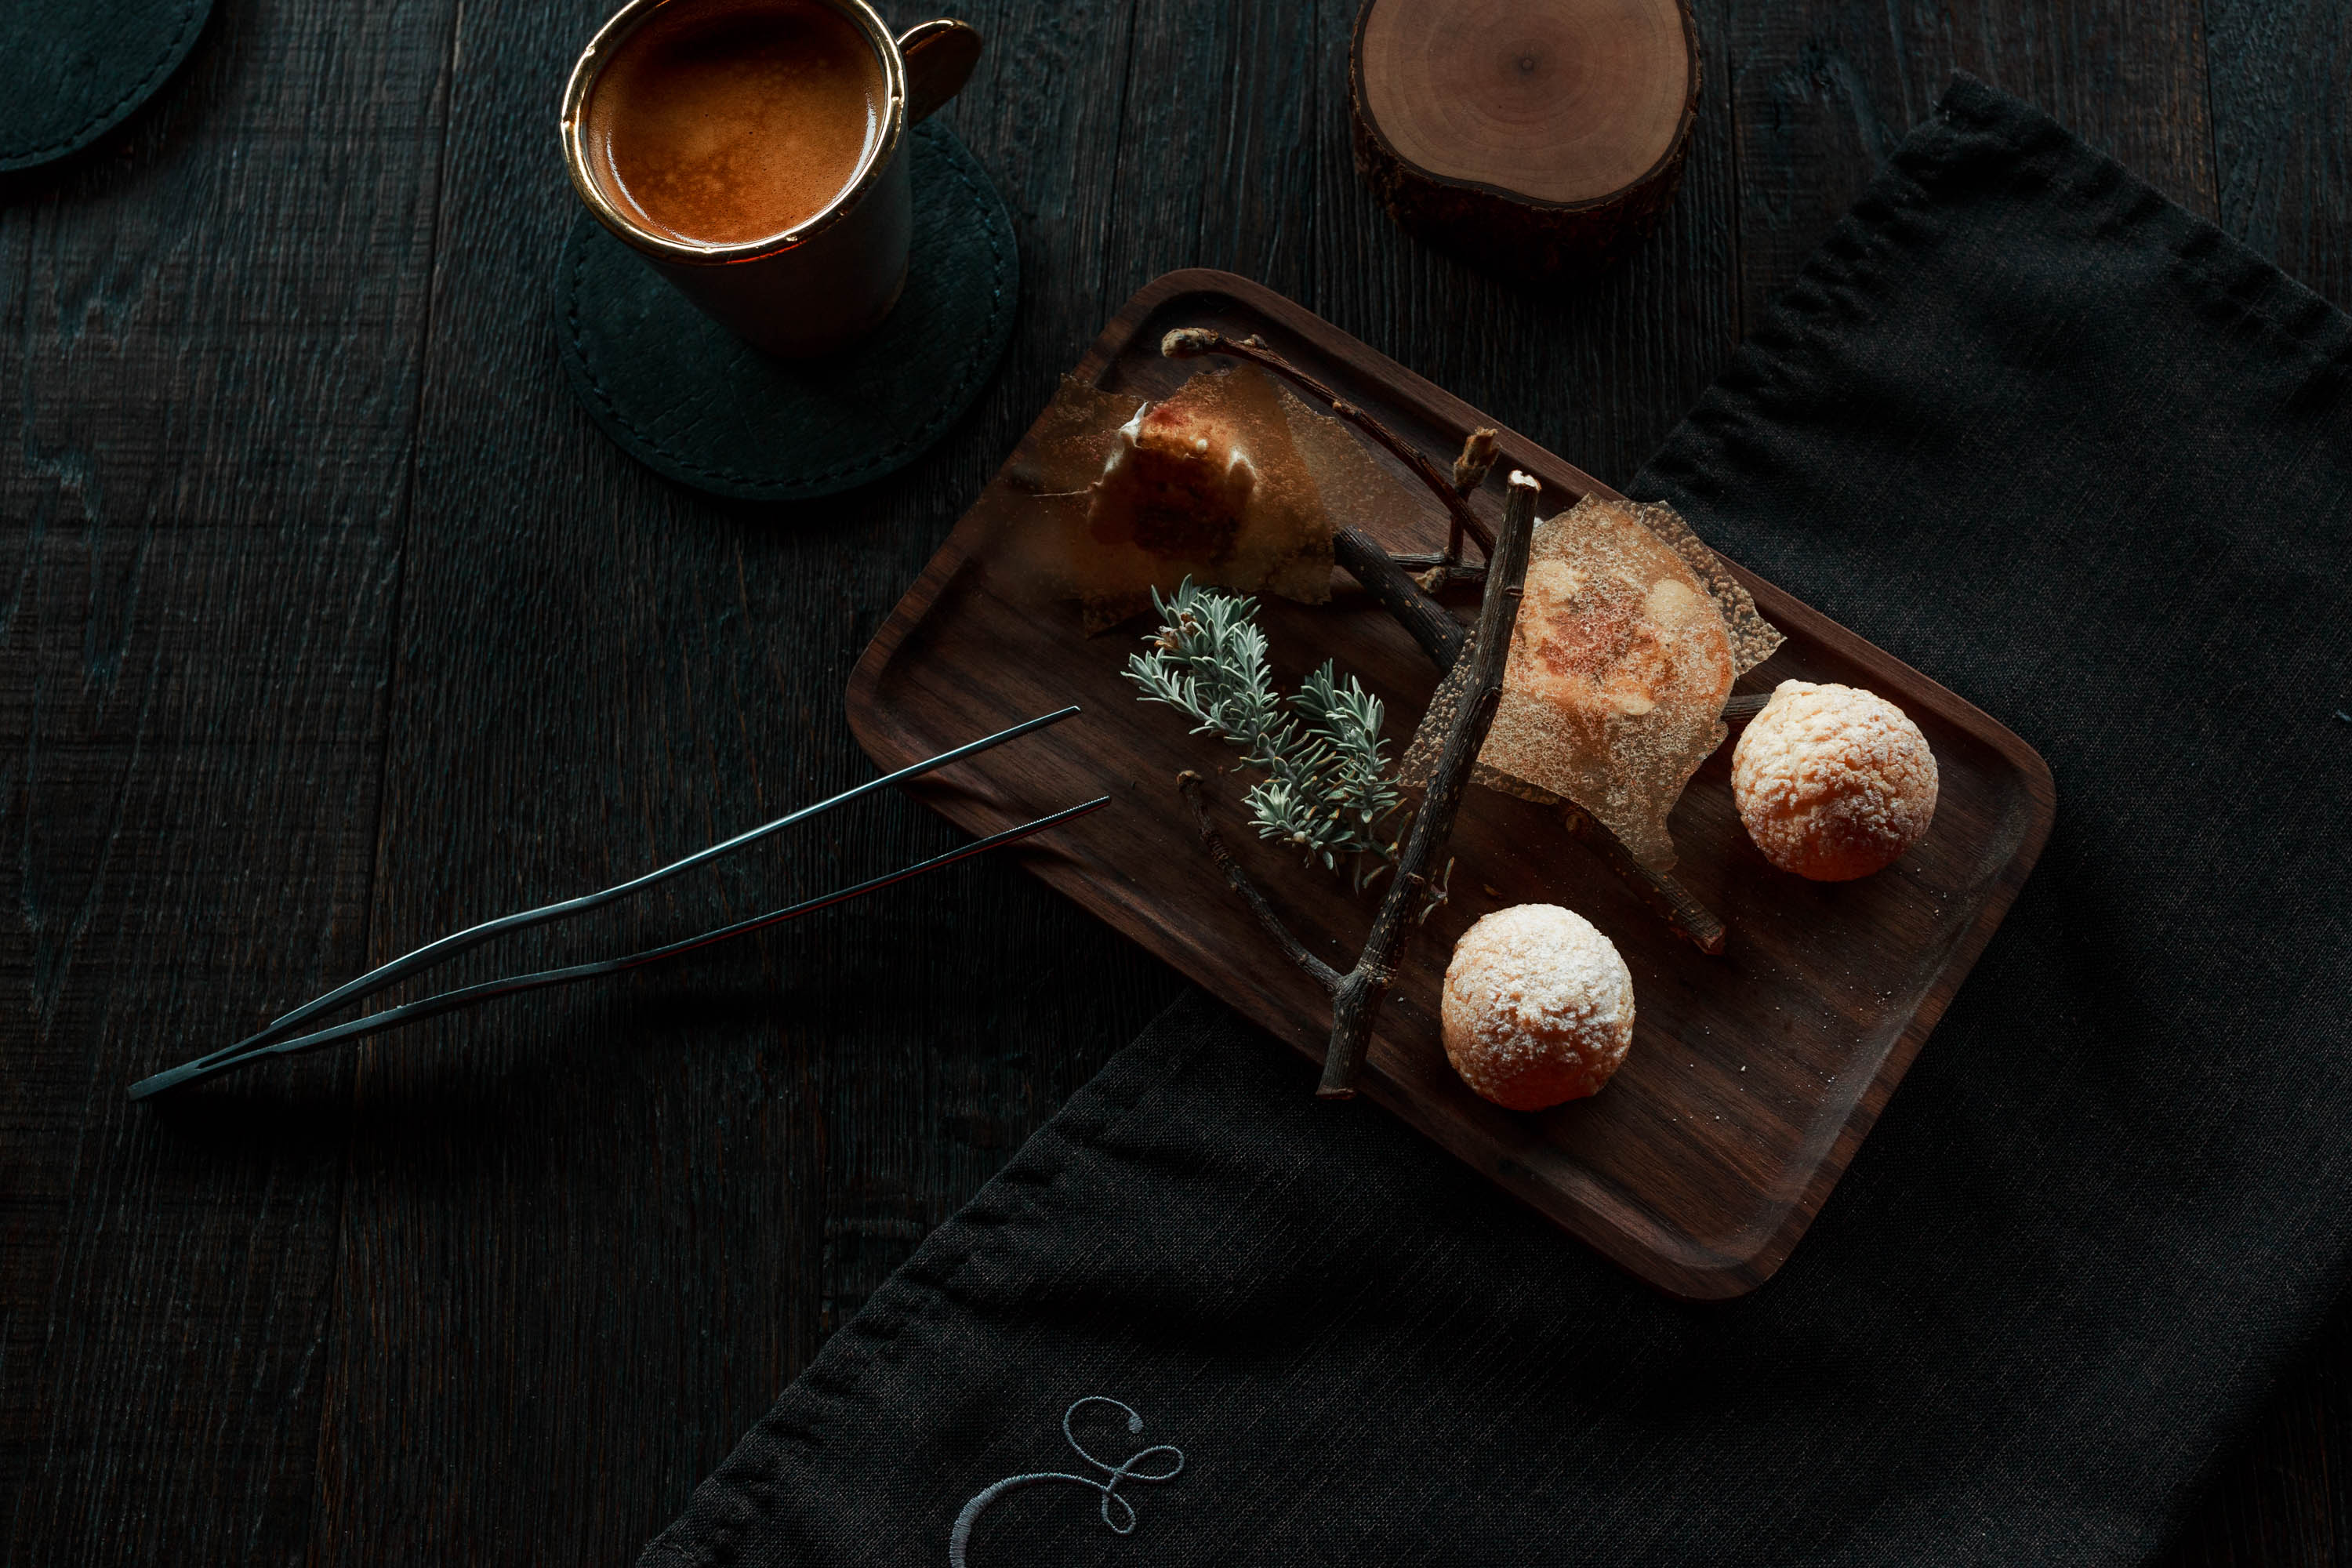 estelle-scott-pickett-melbourne-food-photography-petit-four